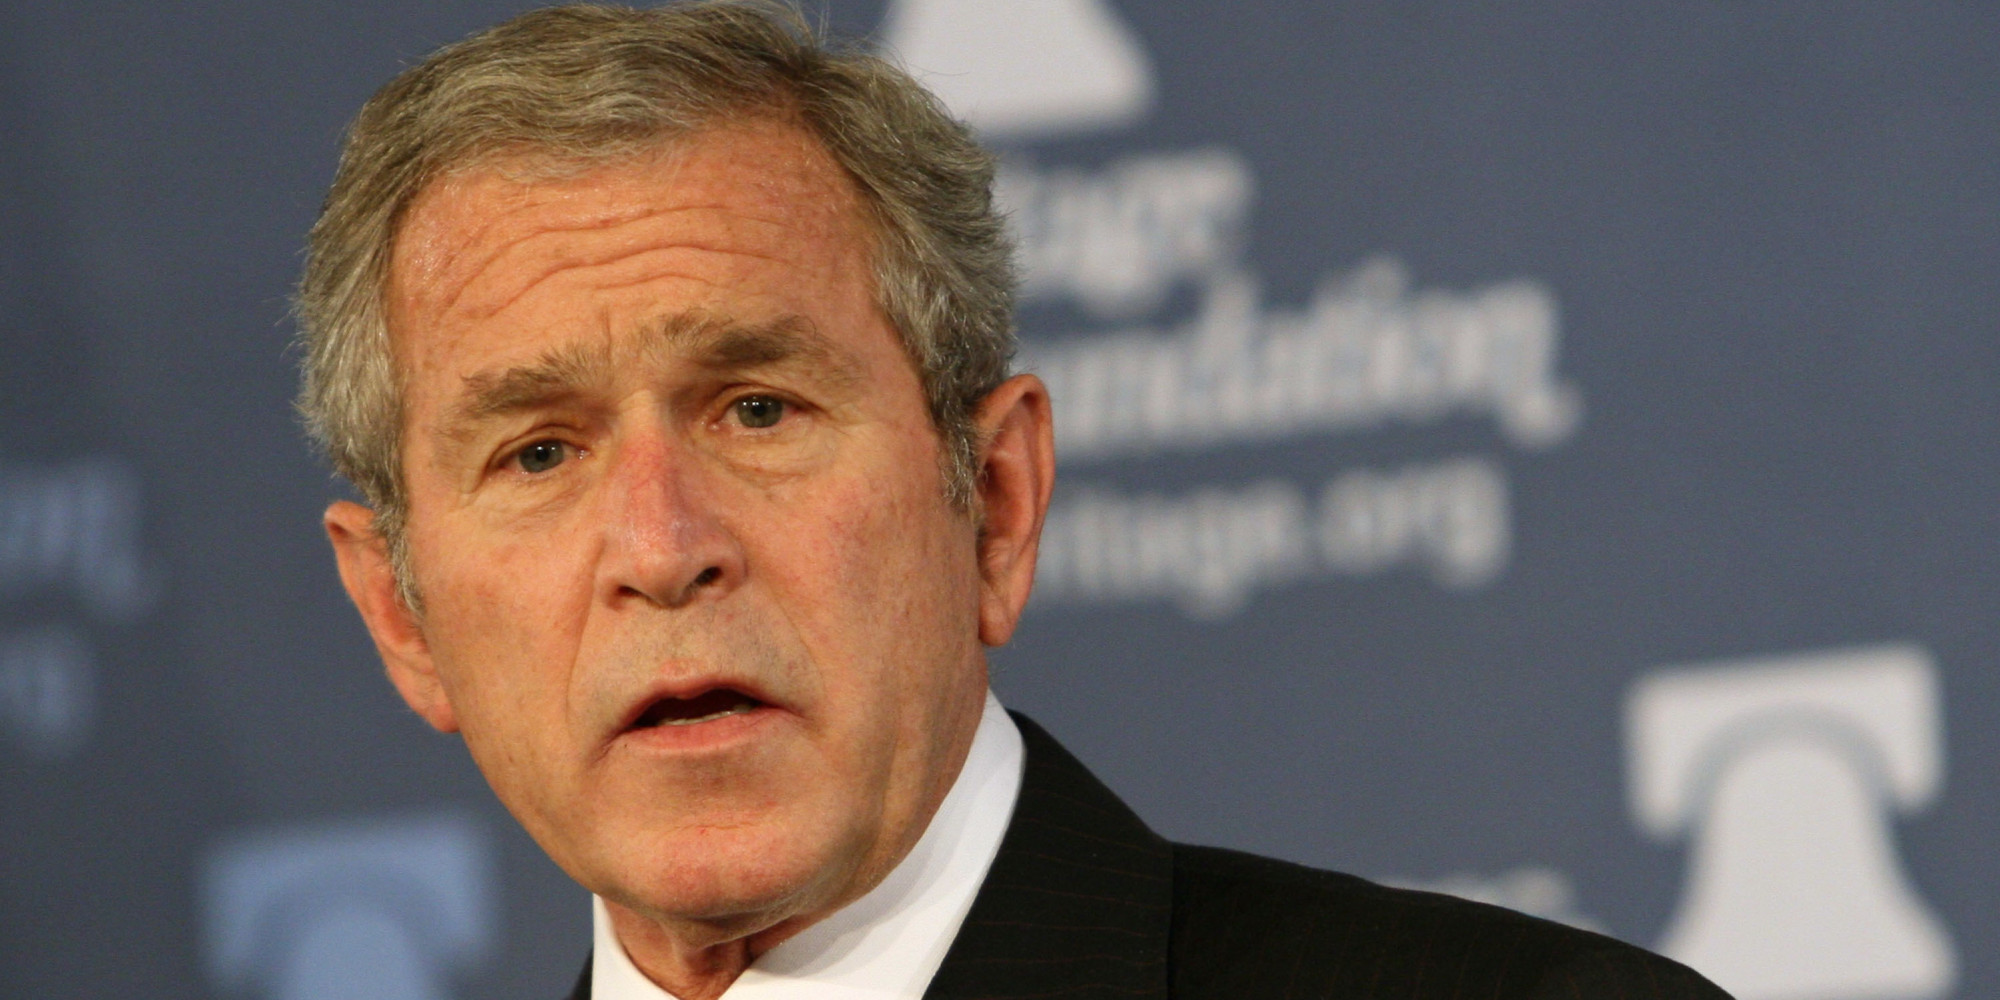 satire essay george bush Fictionalized portrayals of george w bush, the 43rd president of the united states, have become common since his inauguration on january 20, 2001many popular tv shows, magazines, books and comics have portrayed or satirized him.